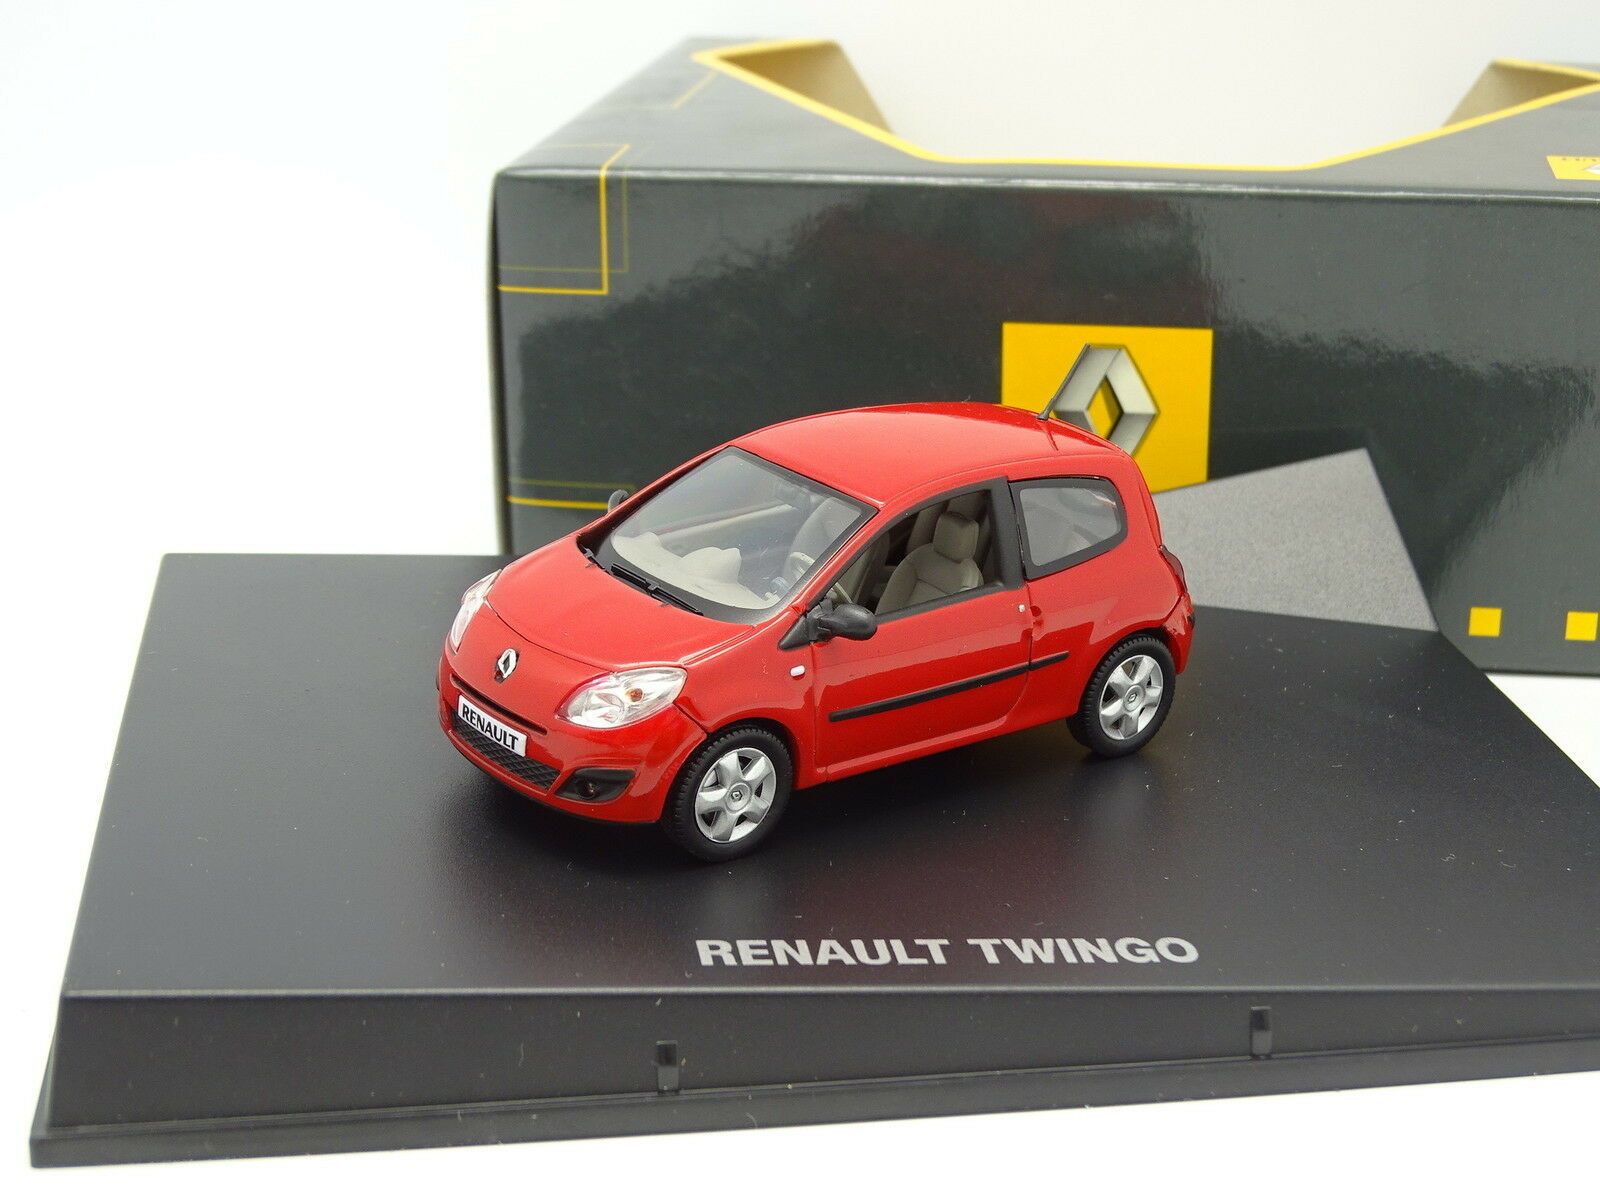 Renault boutique 1 43 - renault twingo 2014 Red